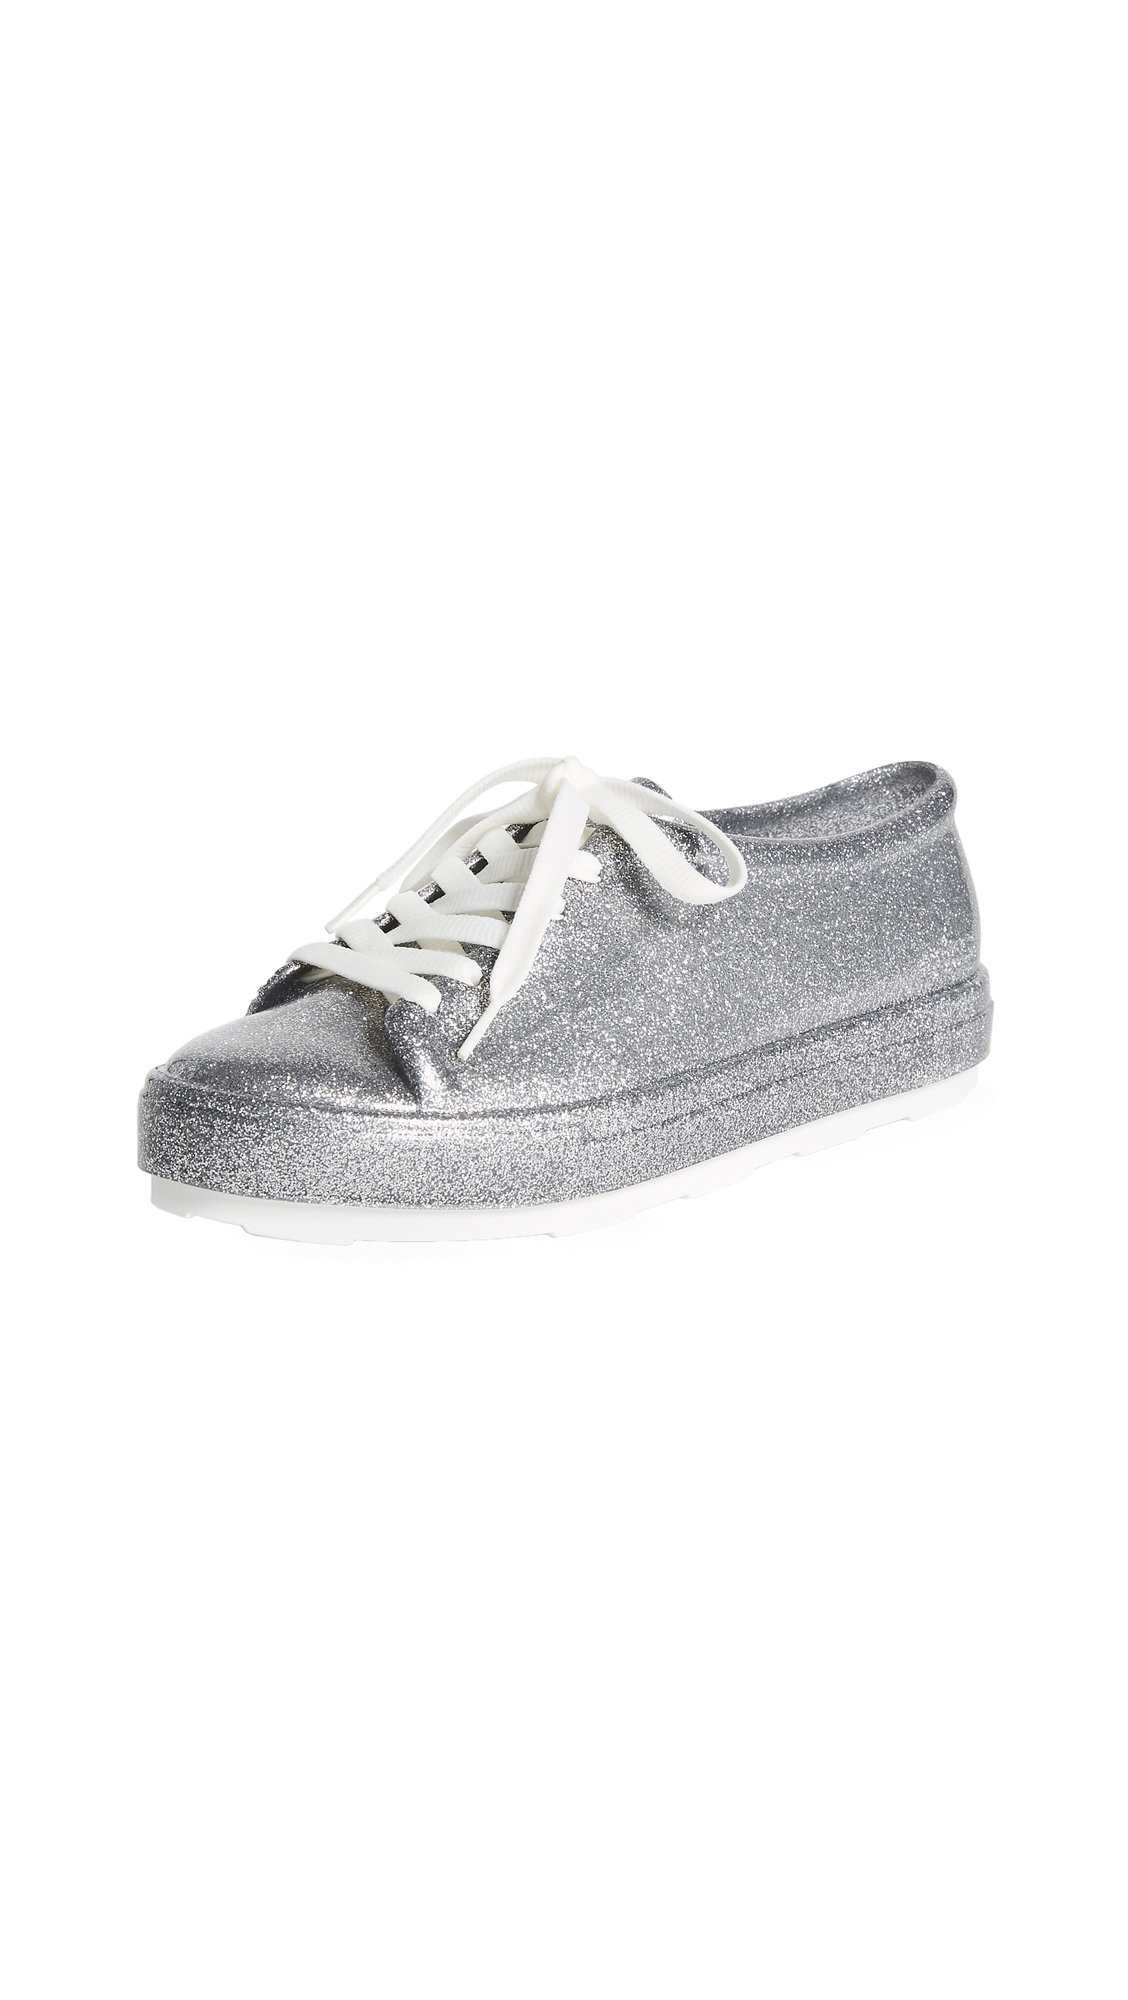 Melissa Be Sneakers - Bright Silver Glitter